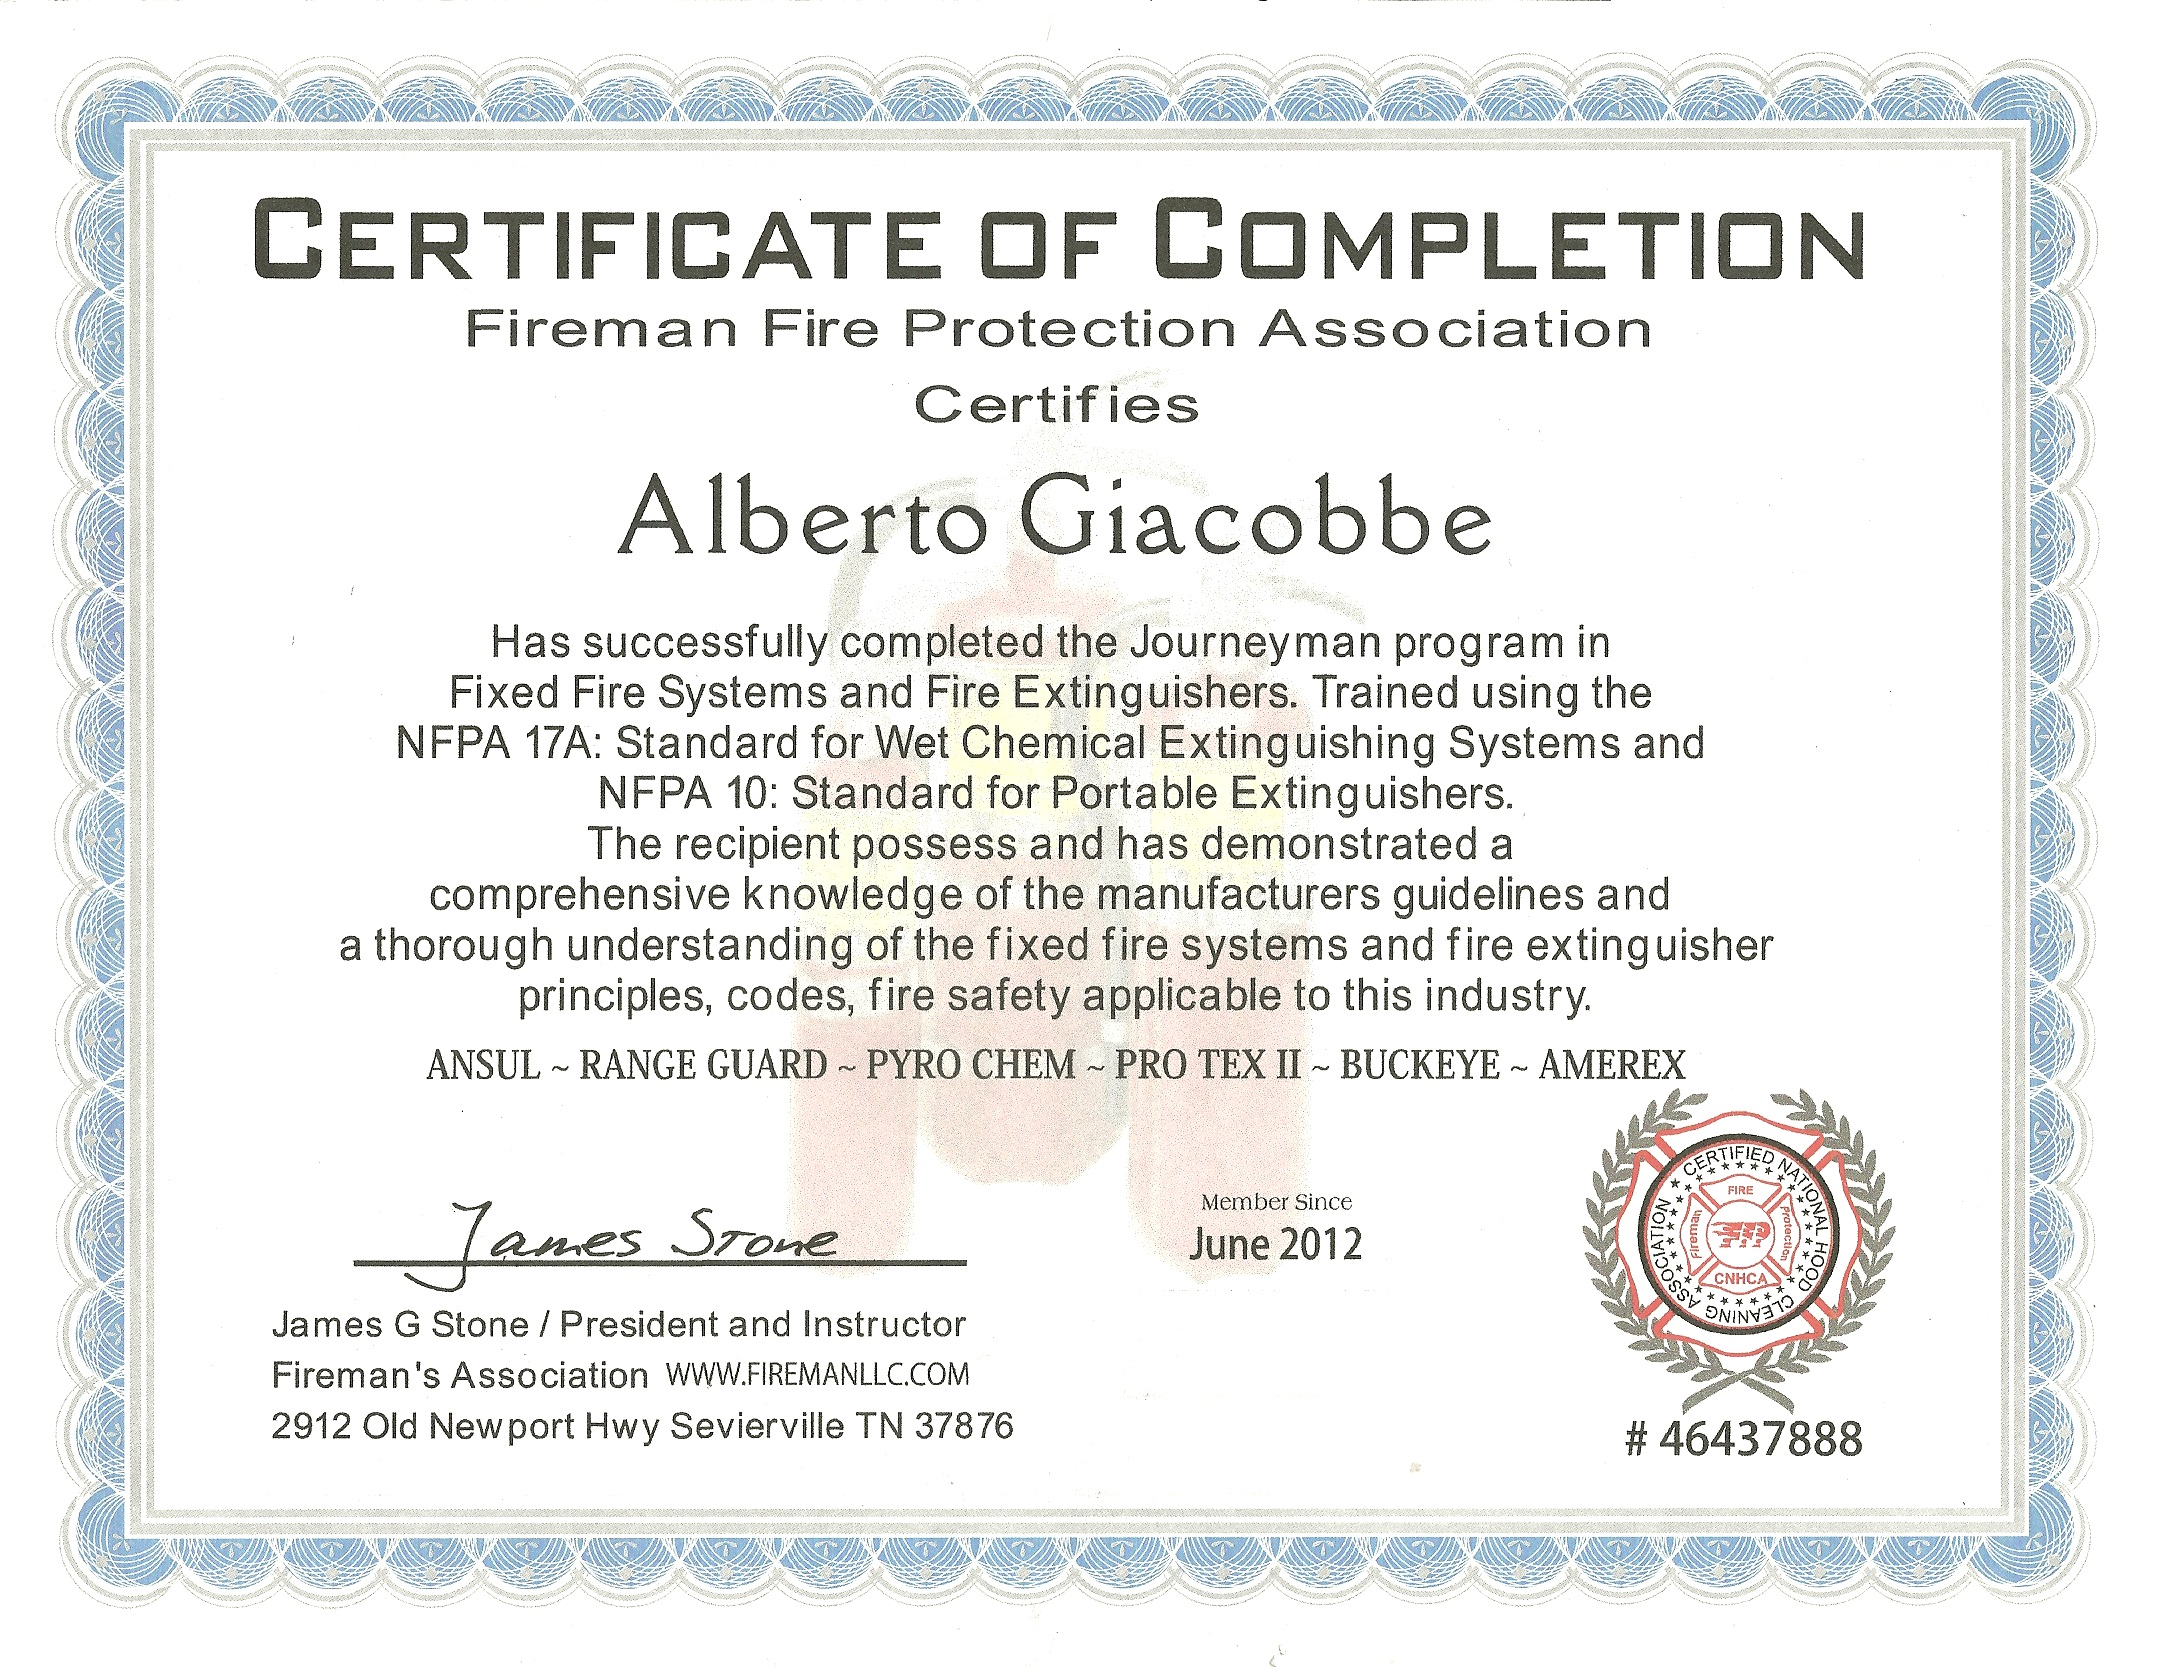 FIXED FIRE SYSTEMS AND FIRE EXTINGUISHERS CERTIFICATED